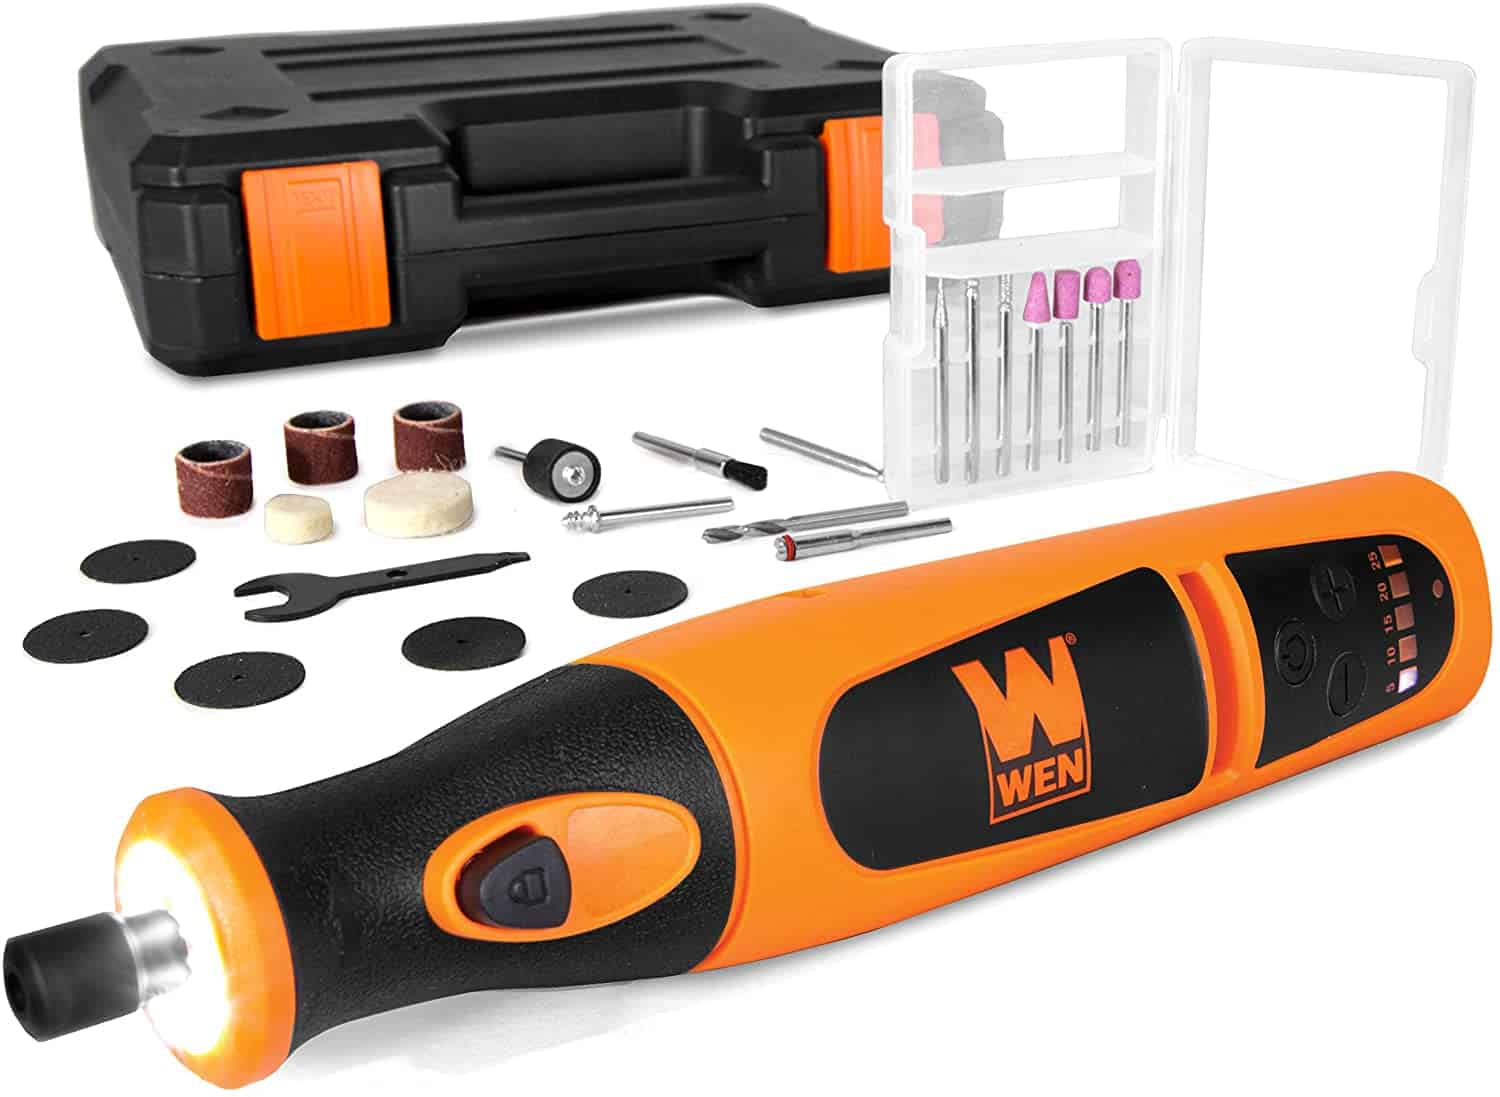 Best cordless rotary tool with LED light- WEN 23072 Variable Speed Lithium-Ion